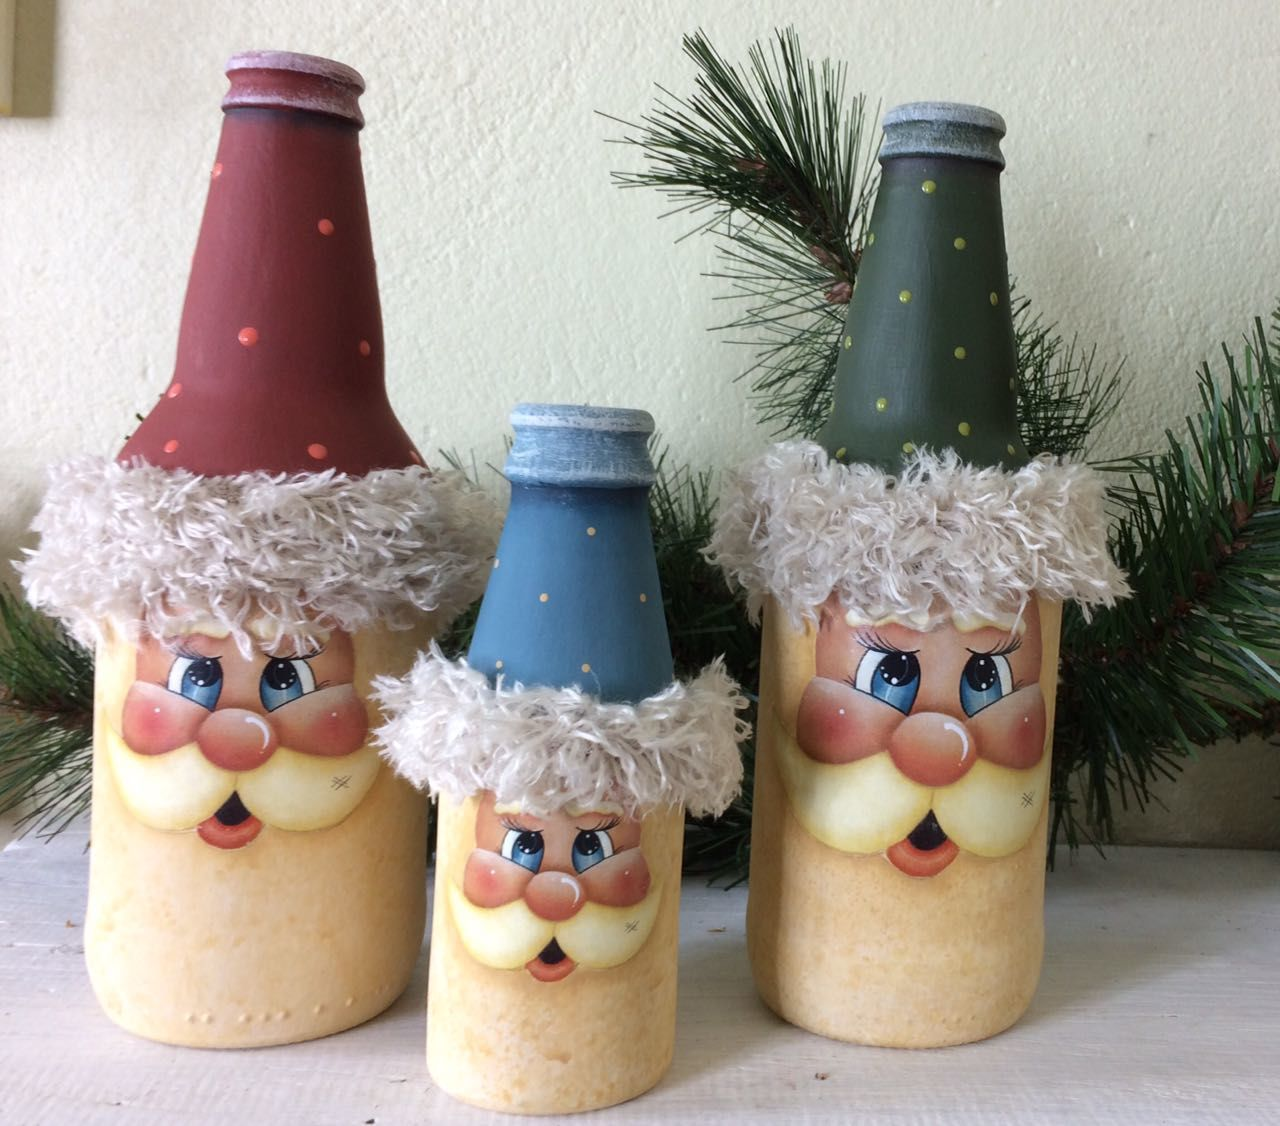 Botellas Decoradas Navideñas Imagem Botellas Pinterest